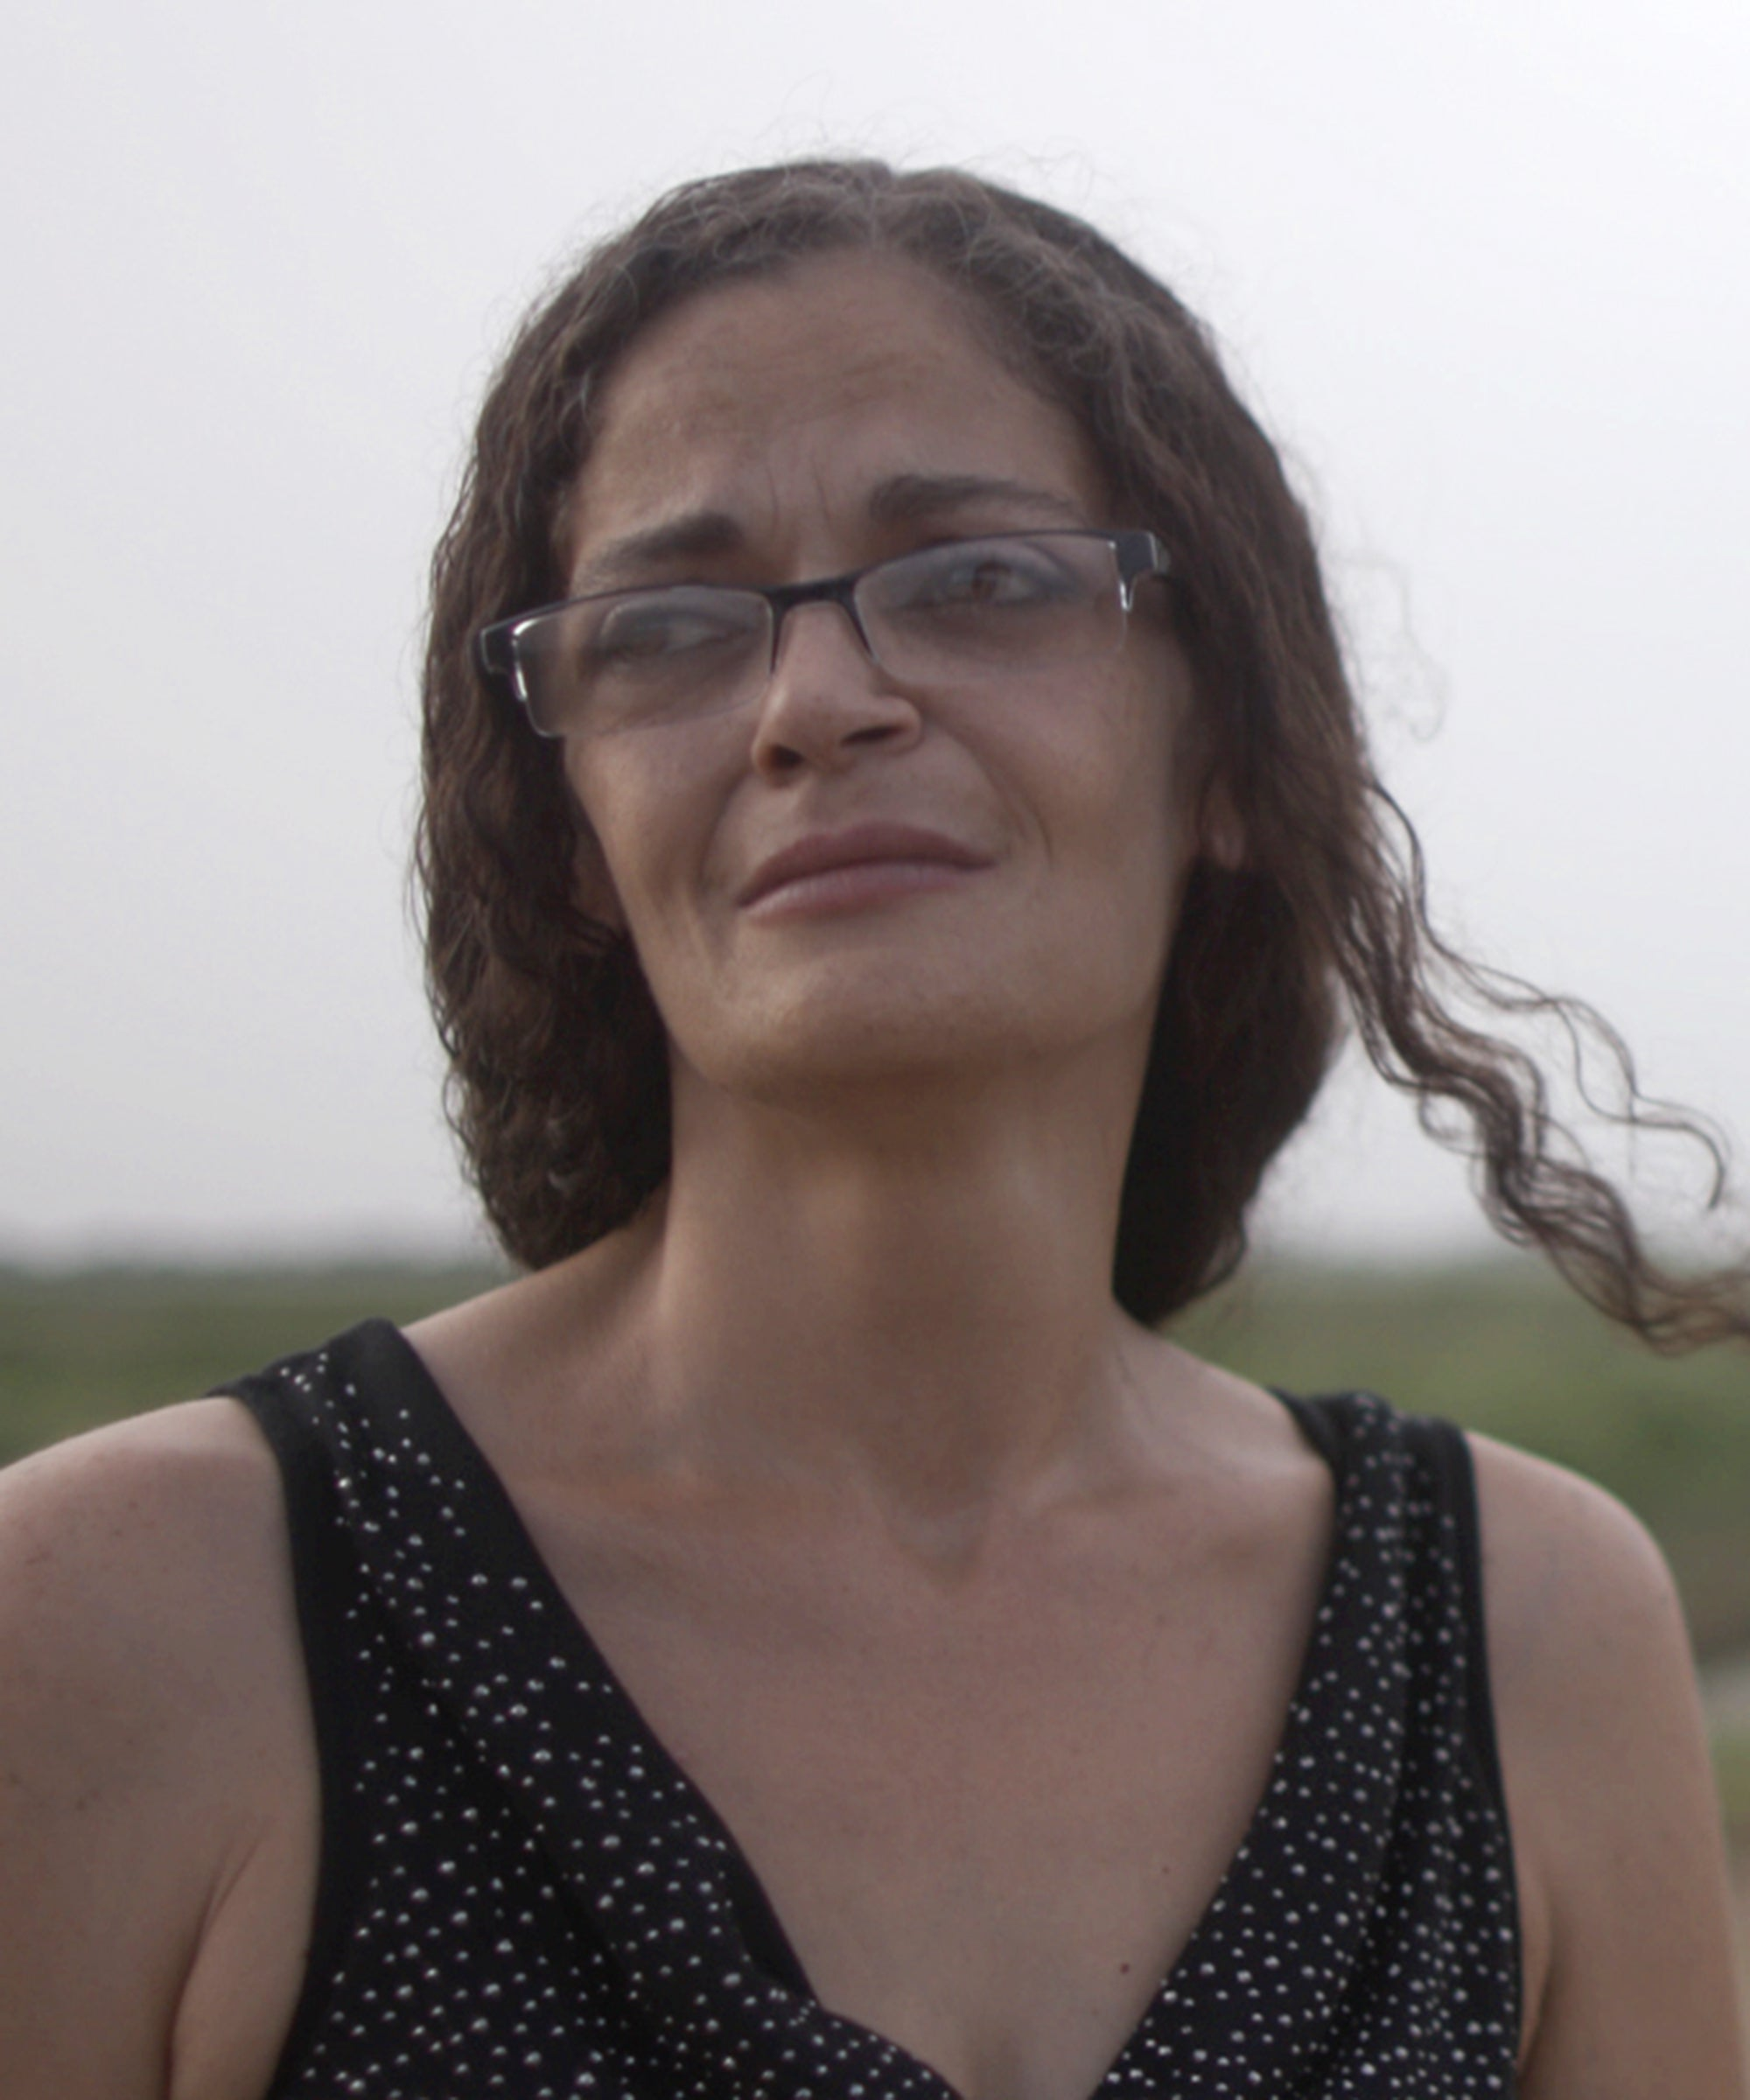 A New Documentary Asks: Who Killed These 8 Women In Louisiana?